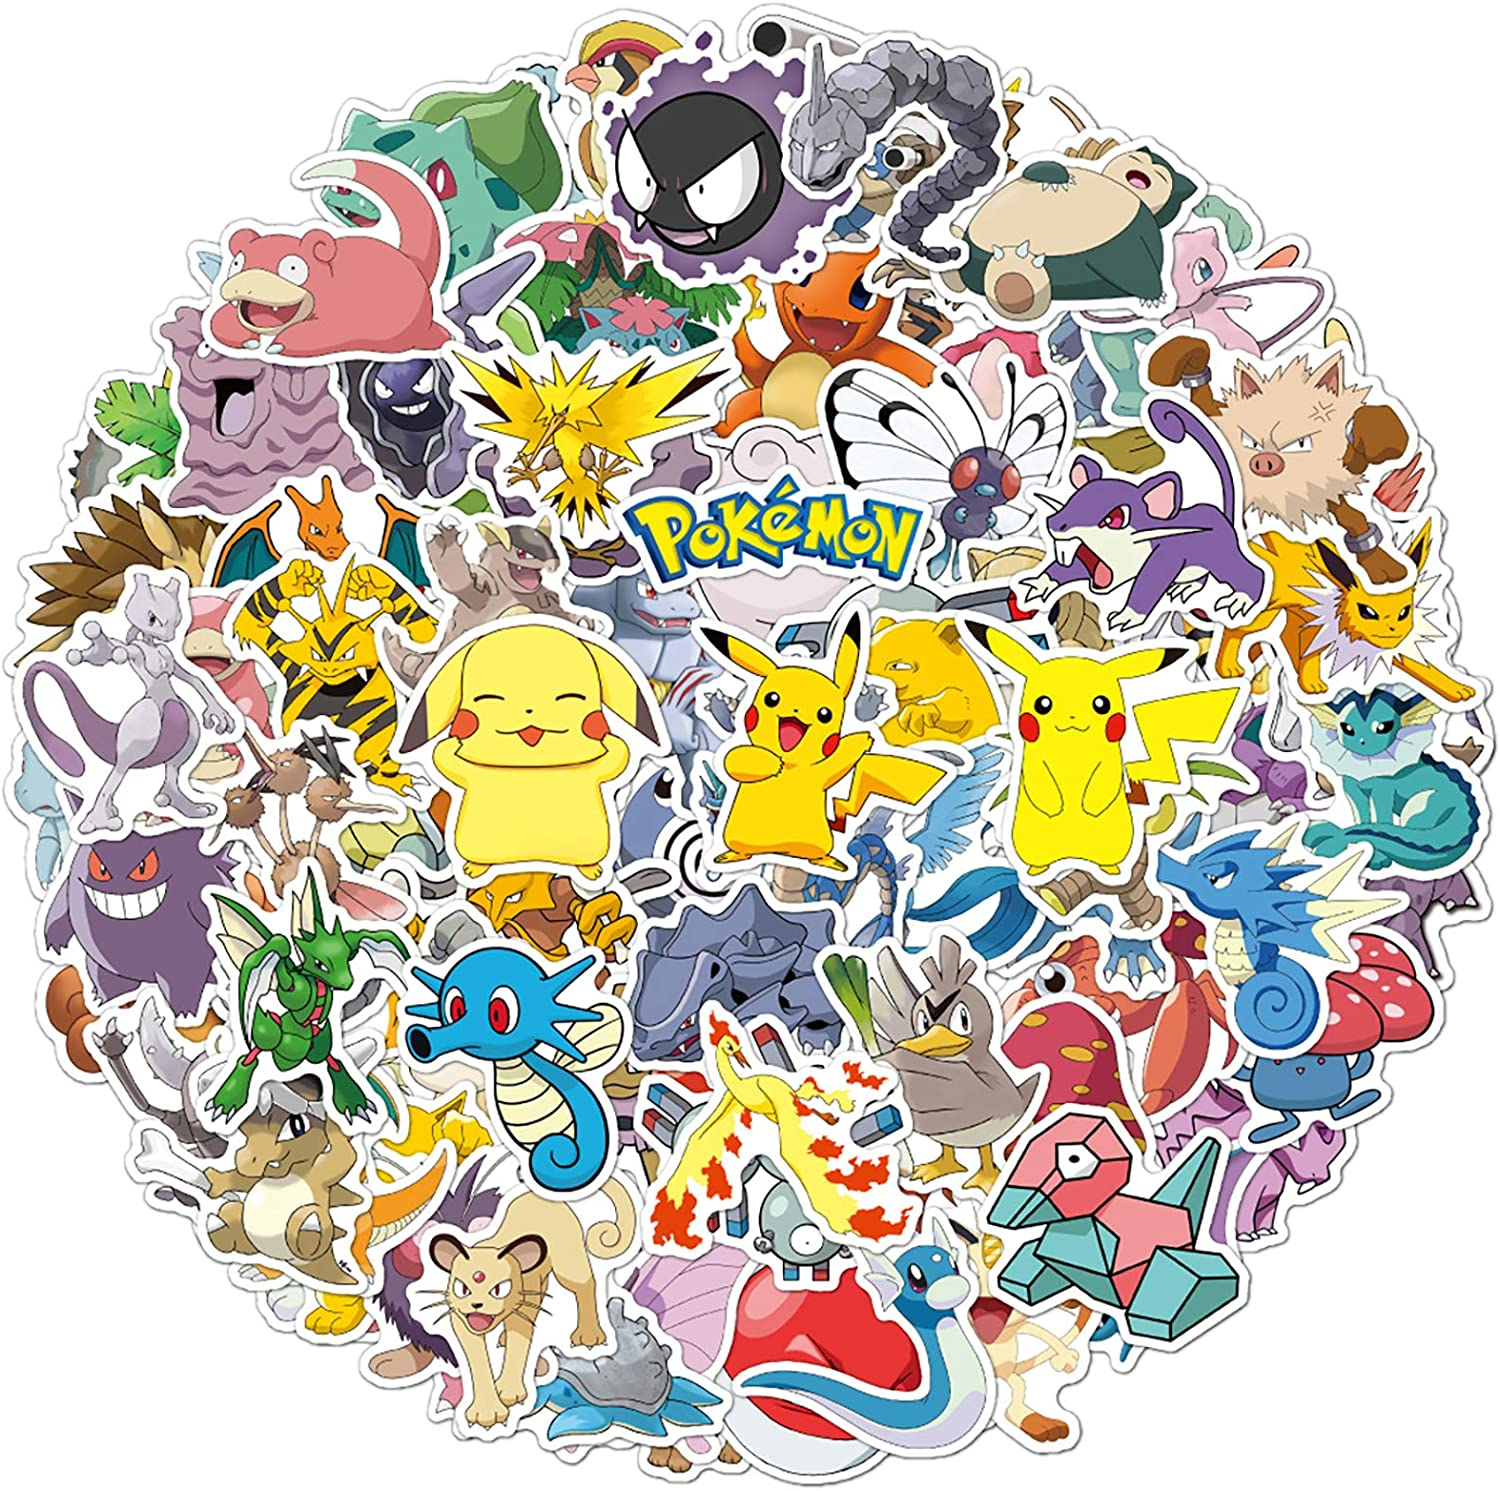 100 Pcs Pokemon Anime Stickers Cute Cartoon Monsters Decals for Water Bottle Hydro Flask Laptop Luggage Car Bike Bicycle Waterproof Vinyl Stickers Pack